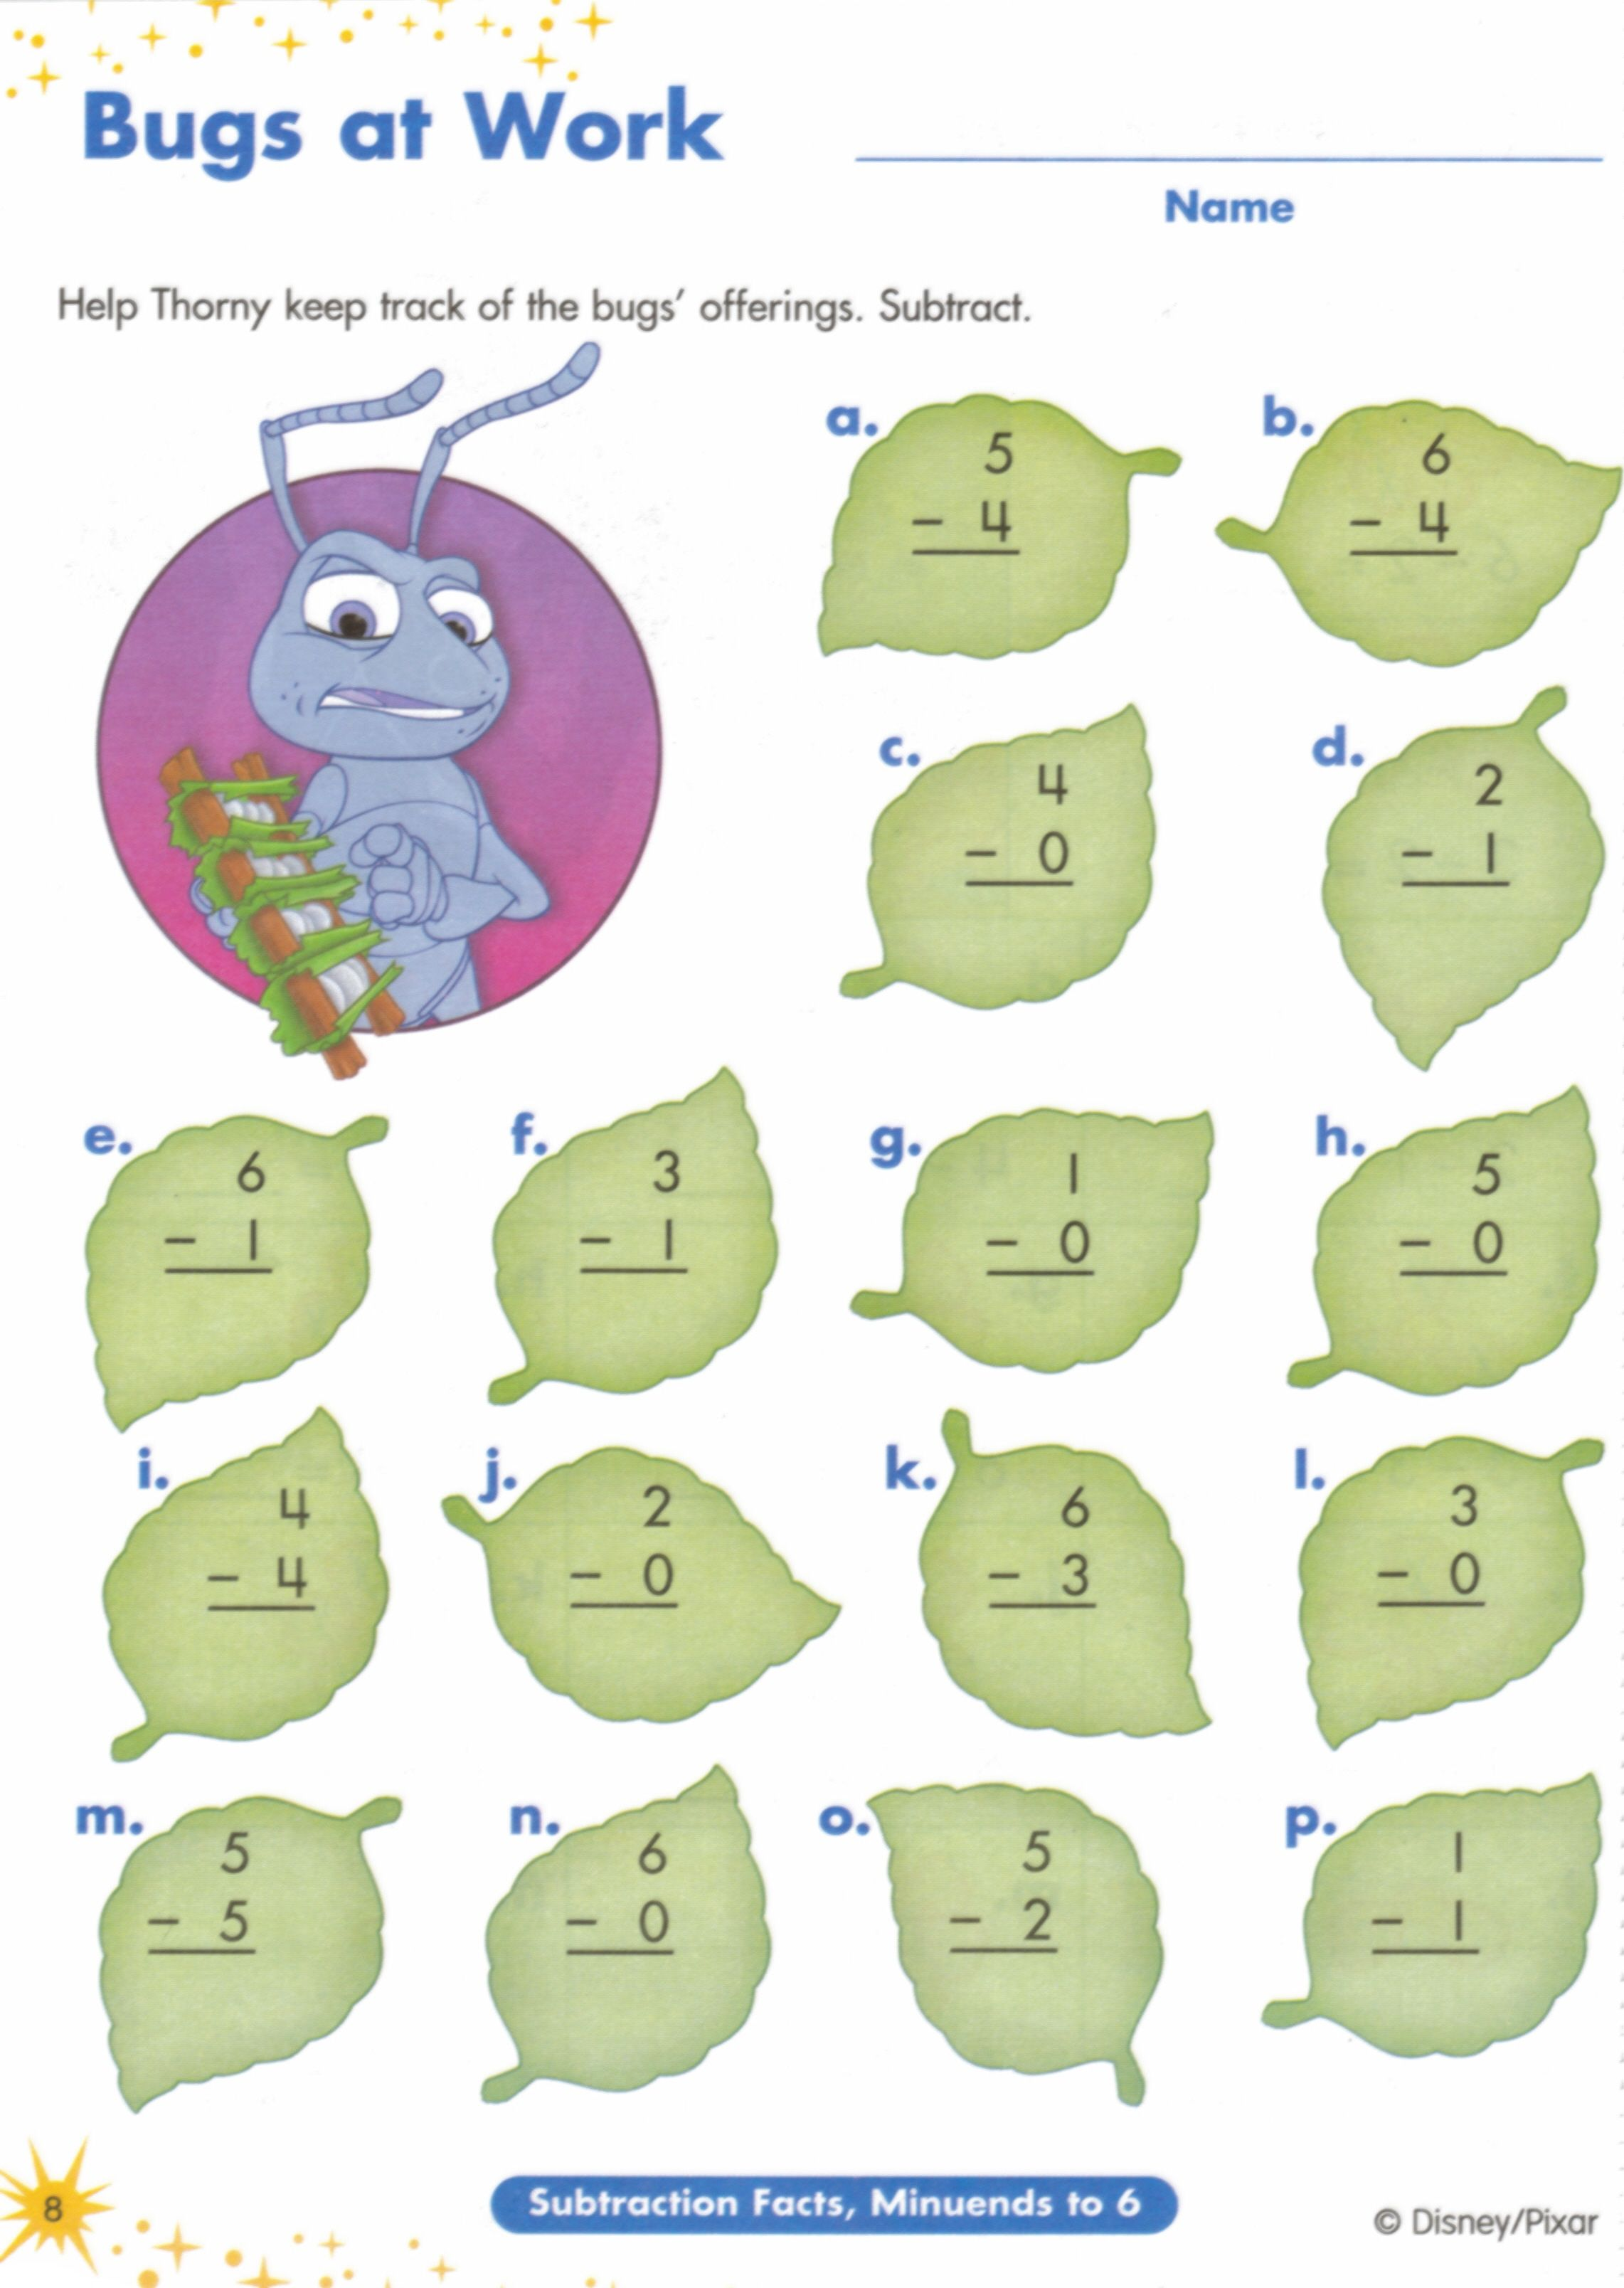 Weirdmailus  Gorgeous  Images About Worksheets On Pinterest  Fun Facts For Kids  With Lovable  Images About Worksheets On Pinterest  Fun Facts For Kids Earth Day Worksheets And Jungles With Easy On The Eye Nuclear Decay Equations Worksheet Also Multiply By  Worksheets In Addition Place Value Nd Grade Worksheet And Merge Two Excel Worksheets As Well As Algebra Worksheets High School Additionally Fun Vocabulary Worksheets From Pinterestcom With Weirdmailus  Lovable  Images About Worksheets On Pinterest  Fun Facts For Kids  With Easy On The Eye  Images About Worksheets On Pinterest  Fun Facts For Kids Earth Day Worksheets And Jungles And Gorgeous Nuclear Decay Equations Worksheet Also Multiply By  Worksheets In Addition Place Value Nd Grade Worksheet From Pinterestcom